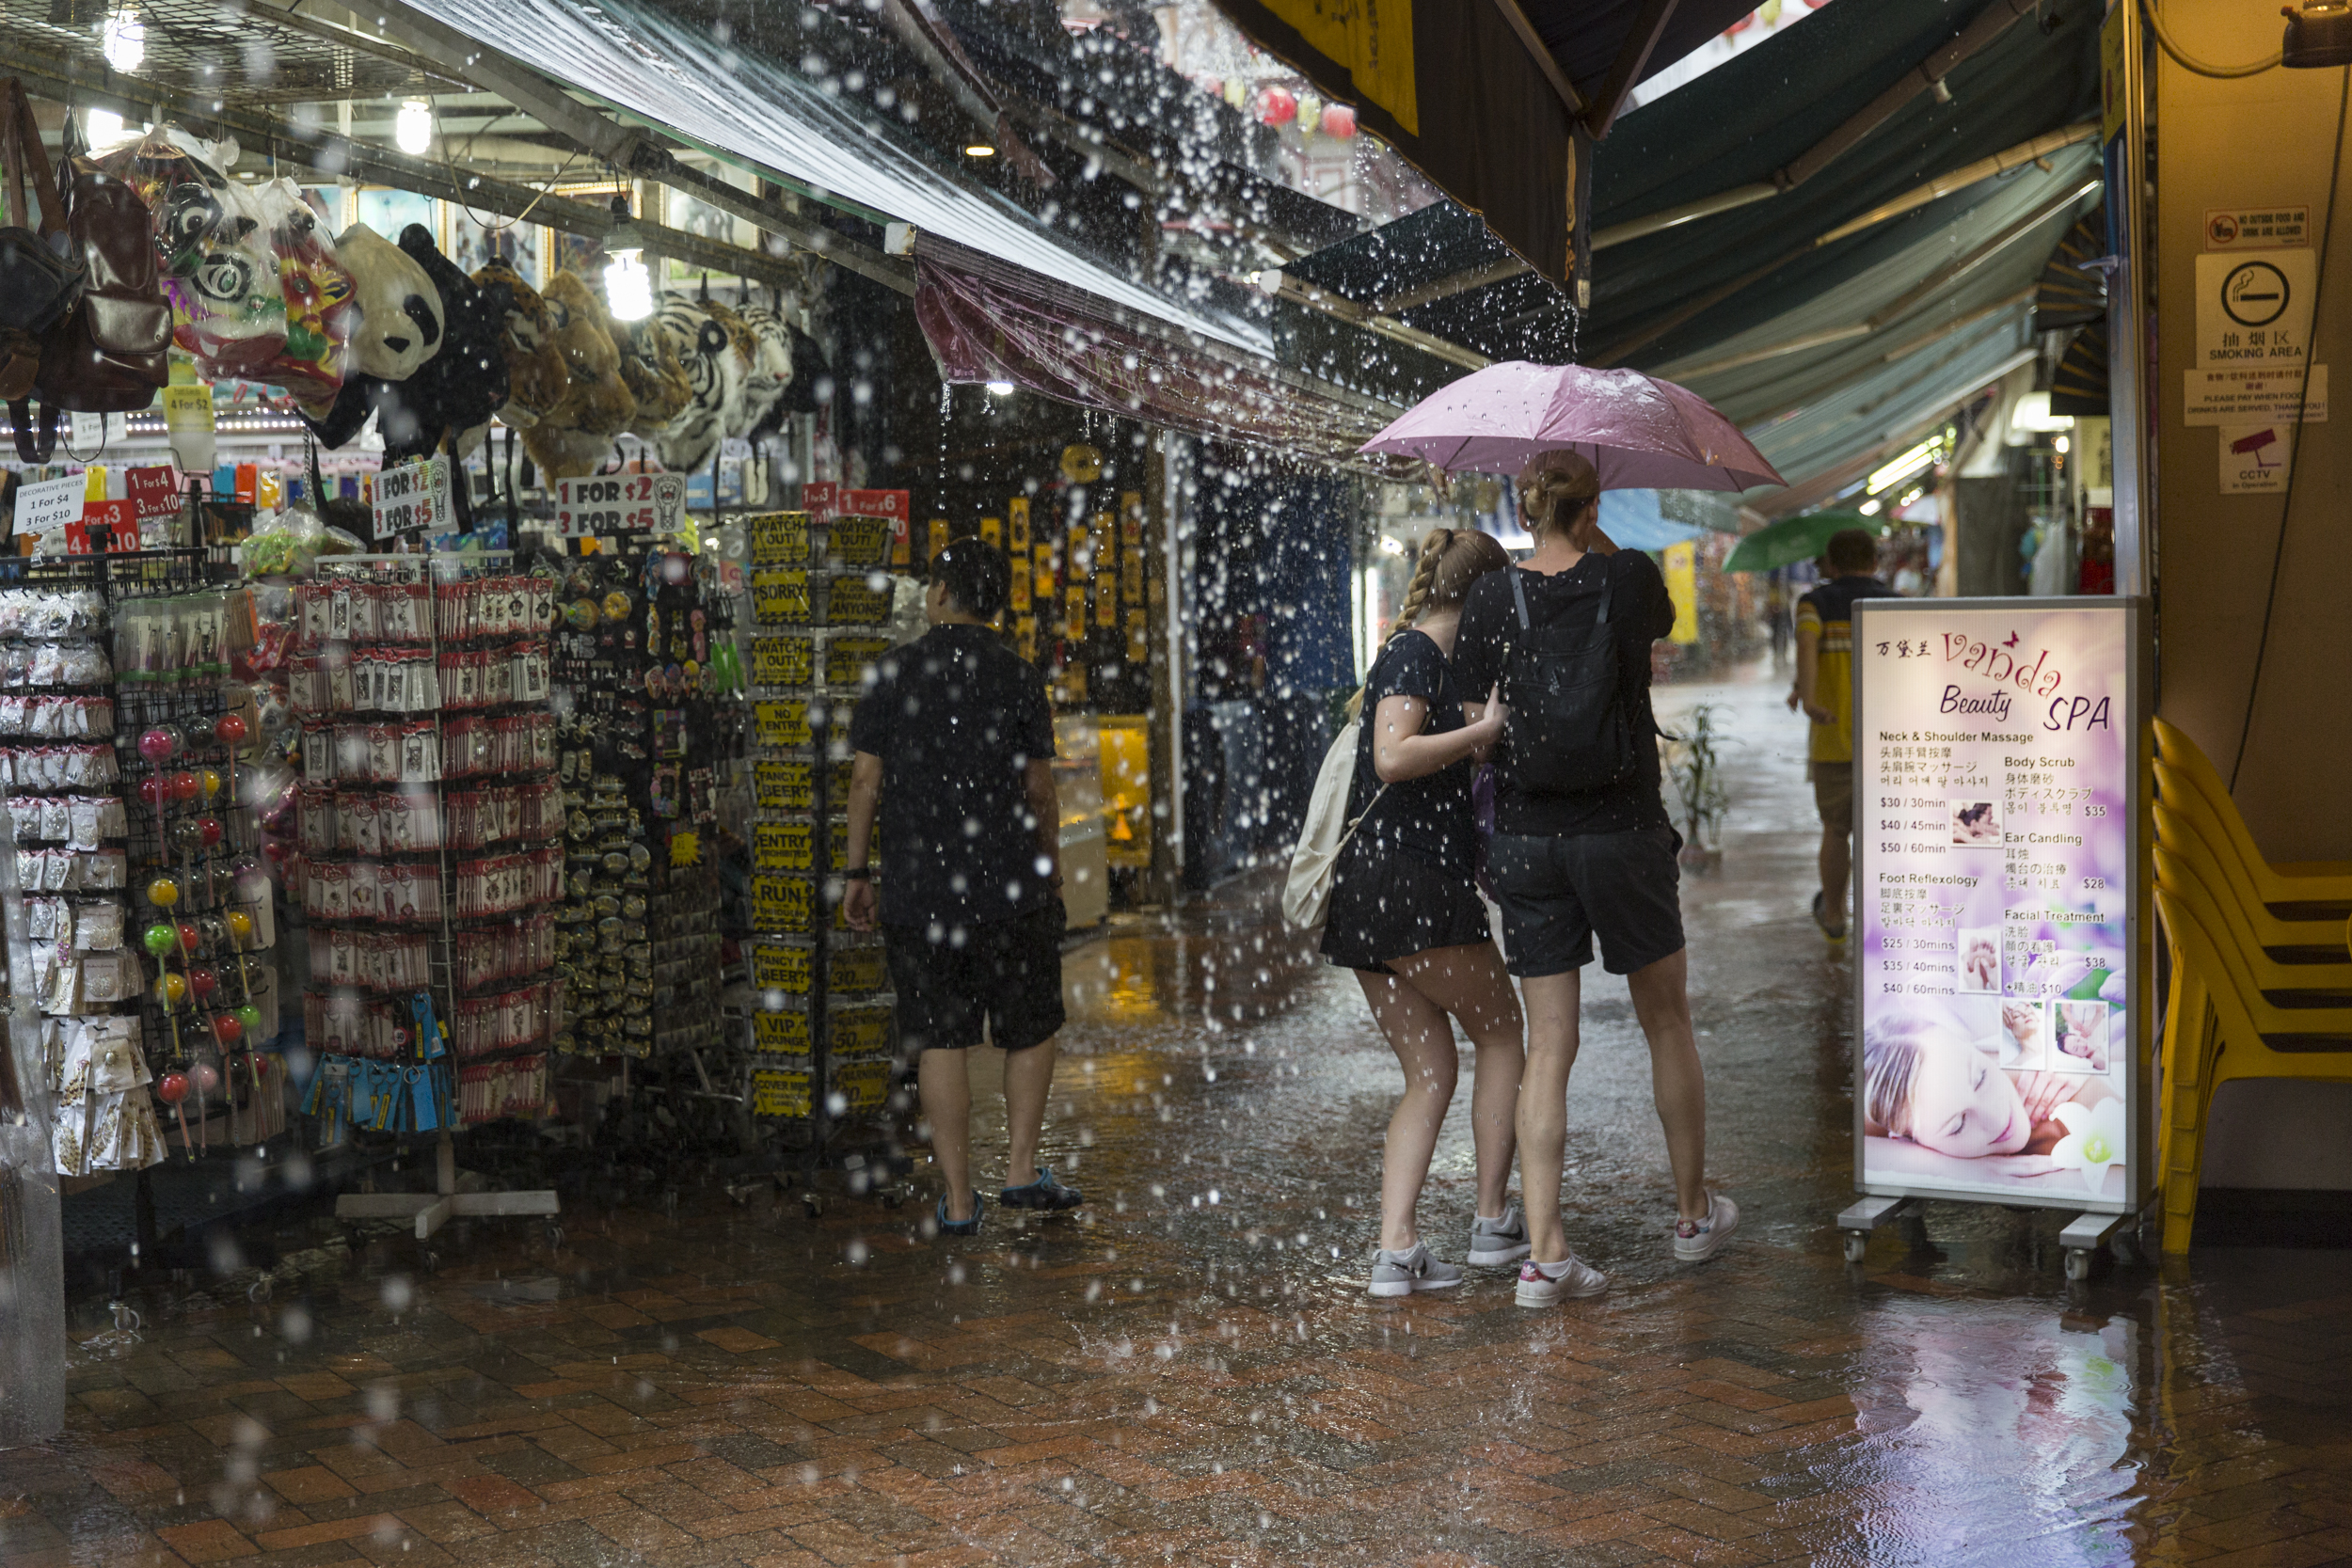 Visitors shield themselves from the sudden downpour in the Chinatown Street Market in Singapore as they try to find more shops under cover on Jan. 2, 2016.The streets quickly flooded forcing vendors to hide their outdoor displays, but many visitors continued shopping despite the rain.